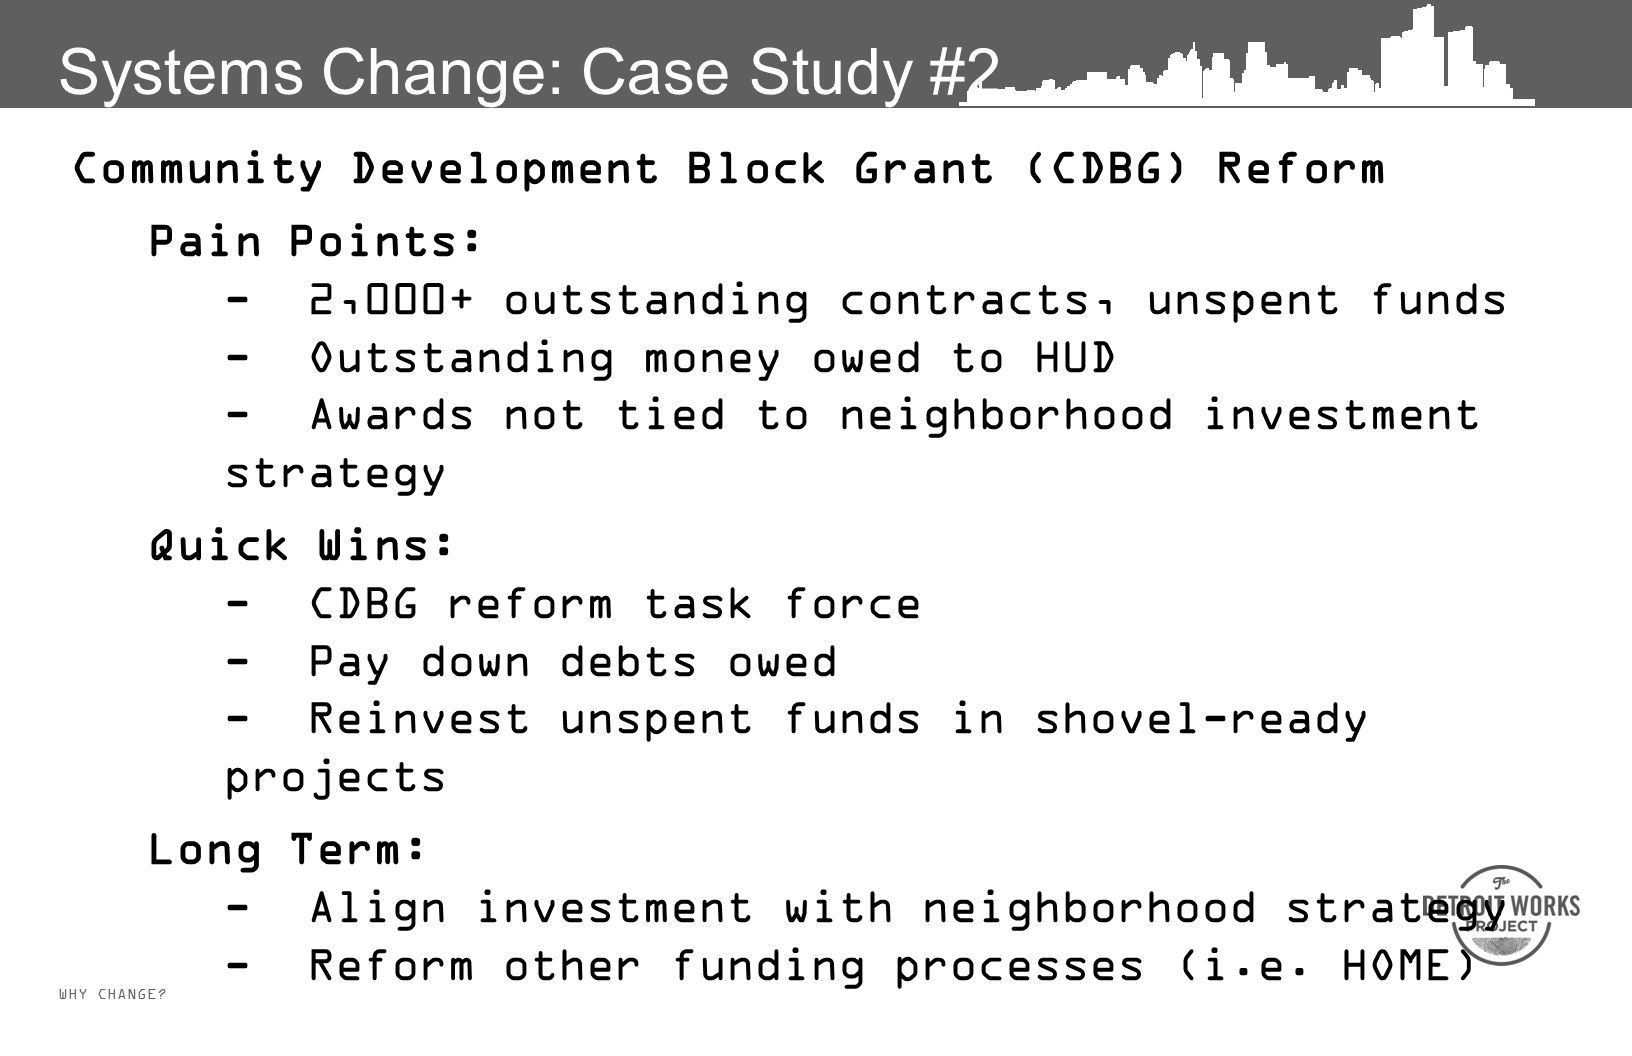 WHY CHANGE? Systems Change: Case Study #2 Community Development Block Grant (CDBG) Reform Pain Points: - 2,000+ outstanding contracts, unspent funds -